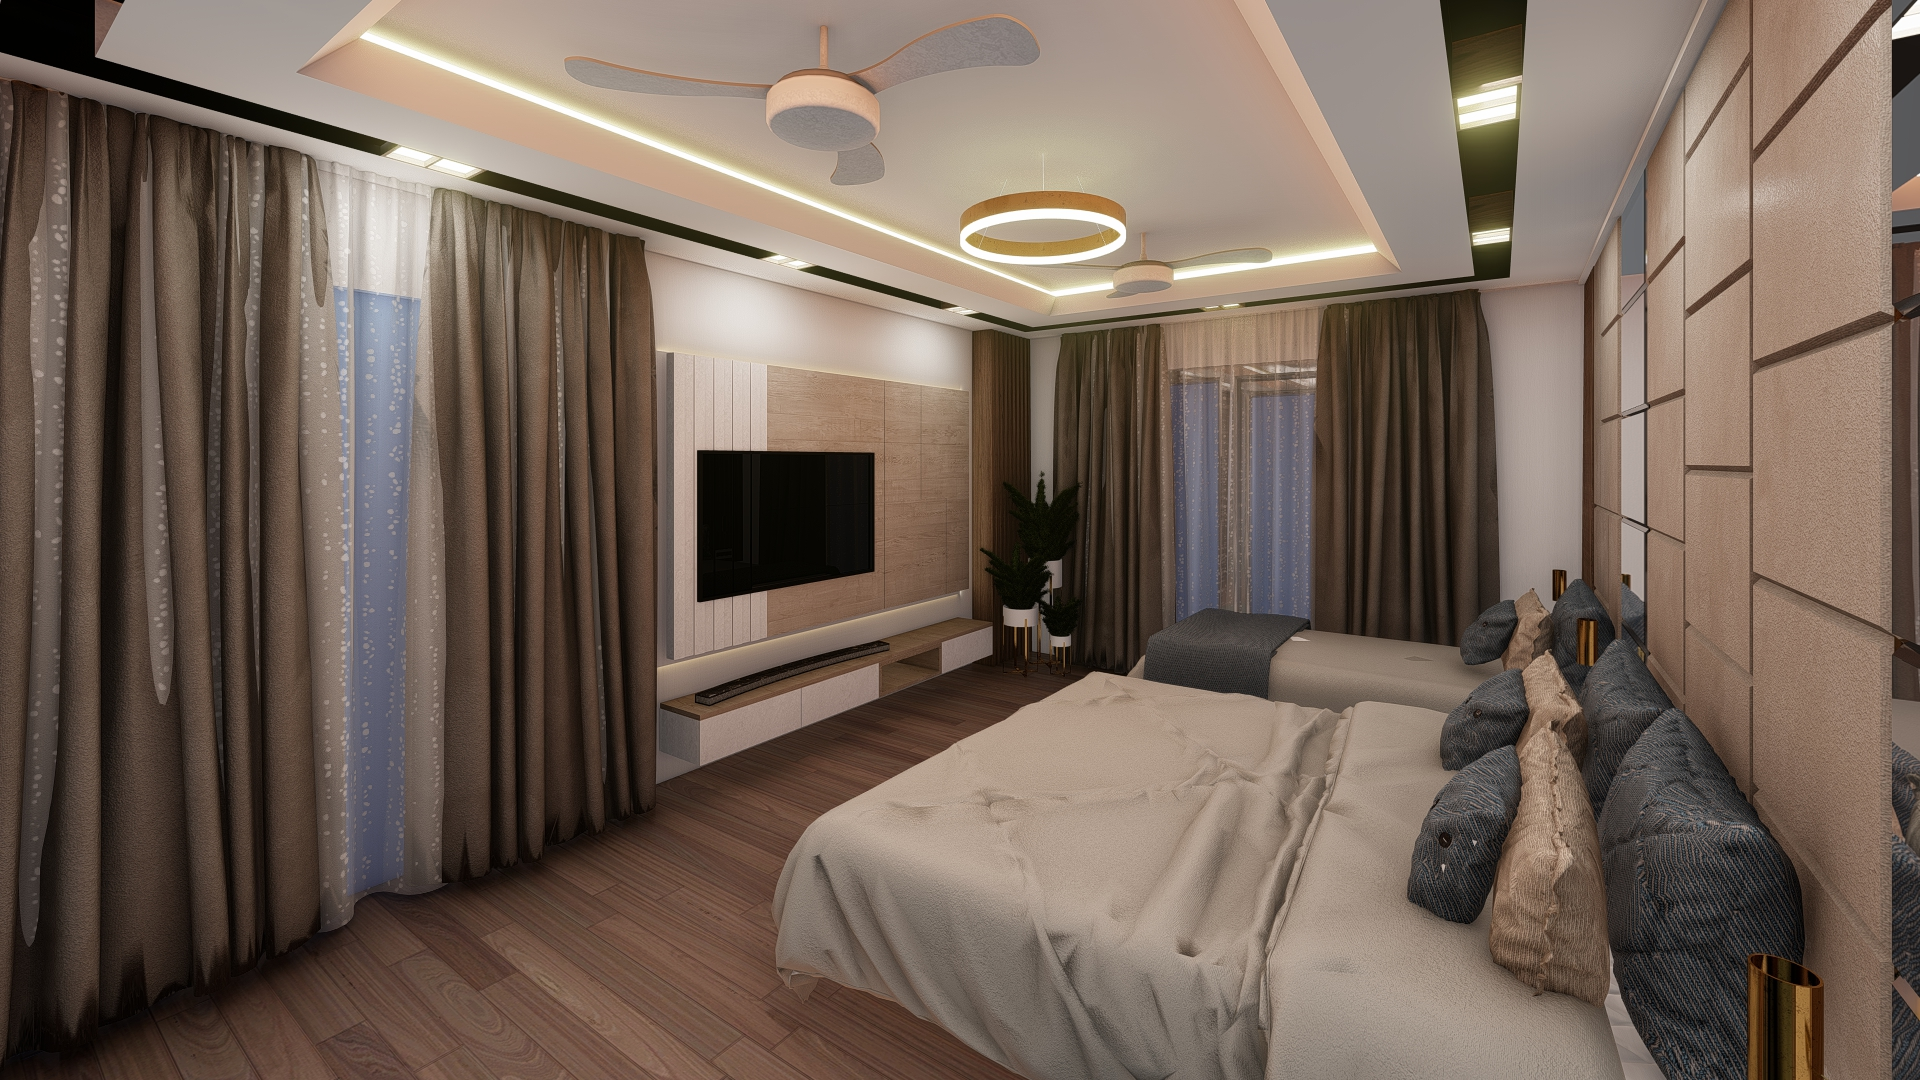 BEDROOM VVIP